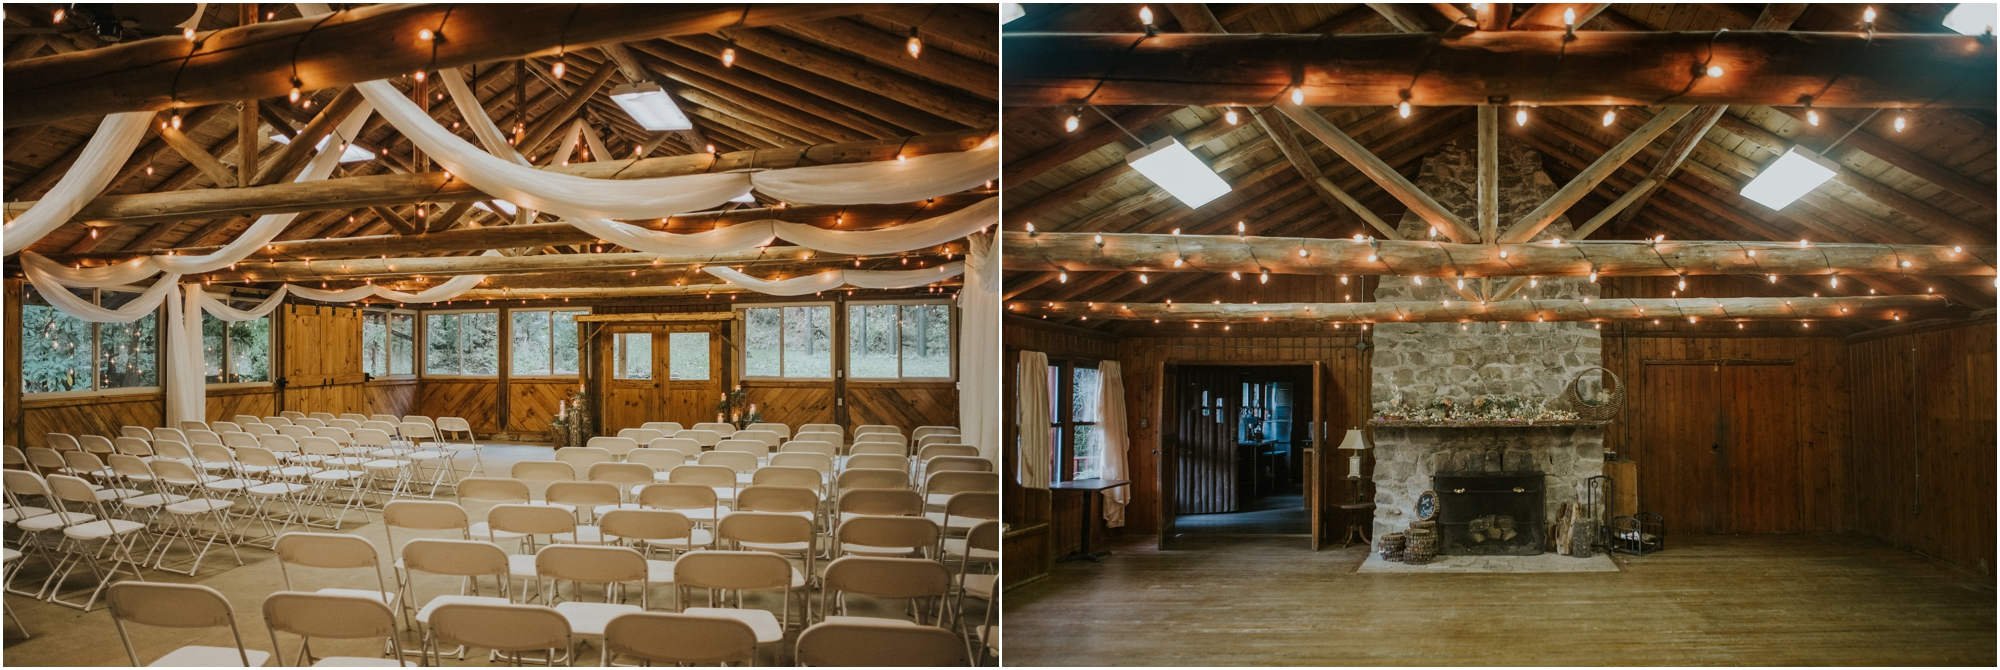 rustic-adventurous-venues-northeast-tennessee-johnsoncity-tricites-millstone-waterstone-camp-at-buffalo-mountain-storybrook_0011.jpg